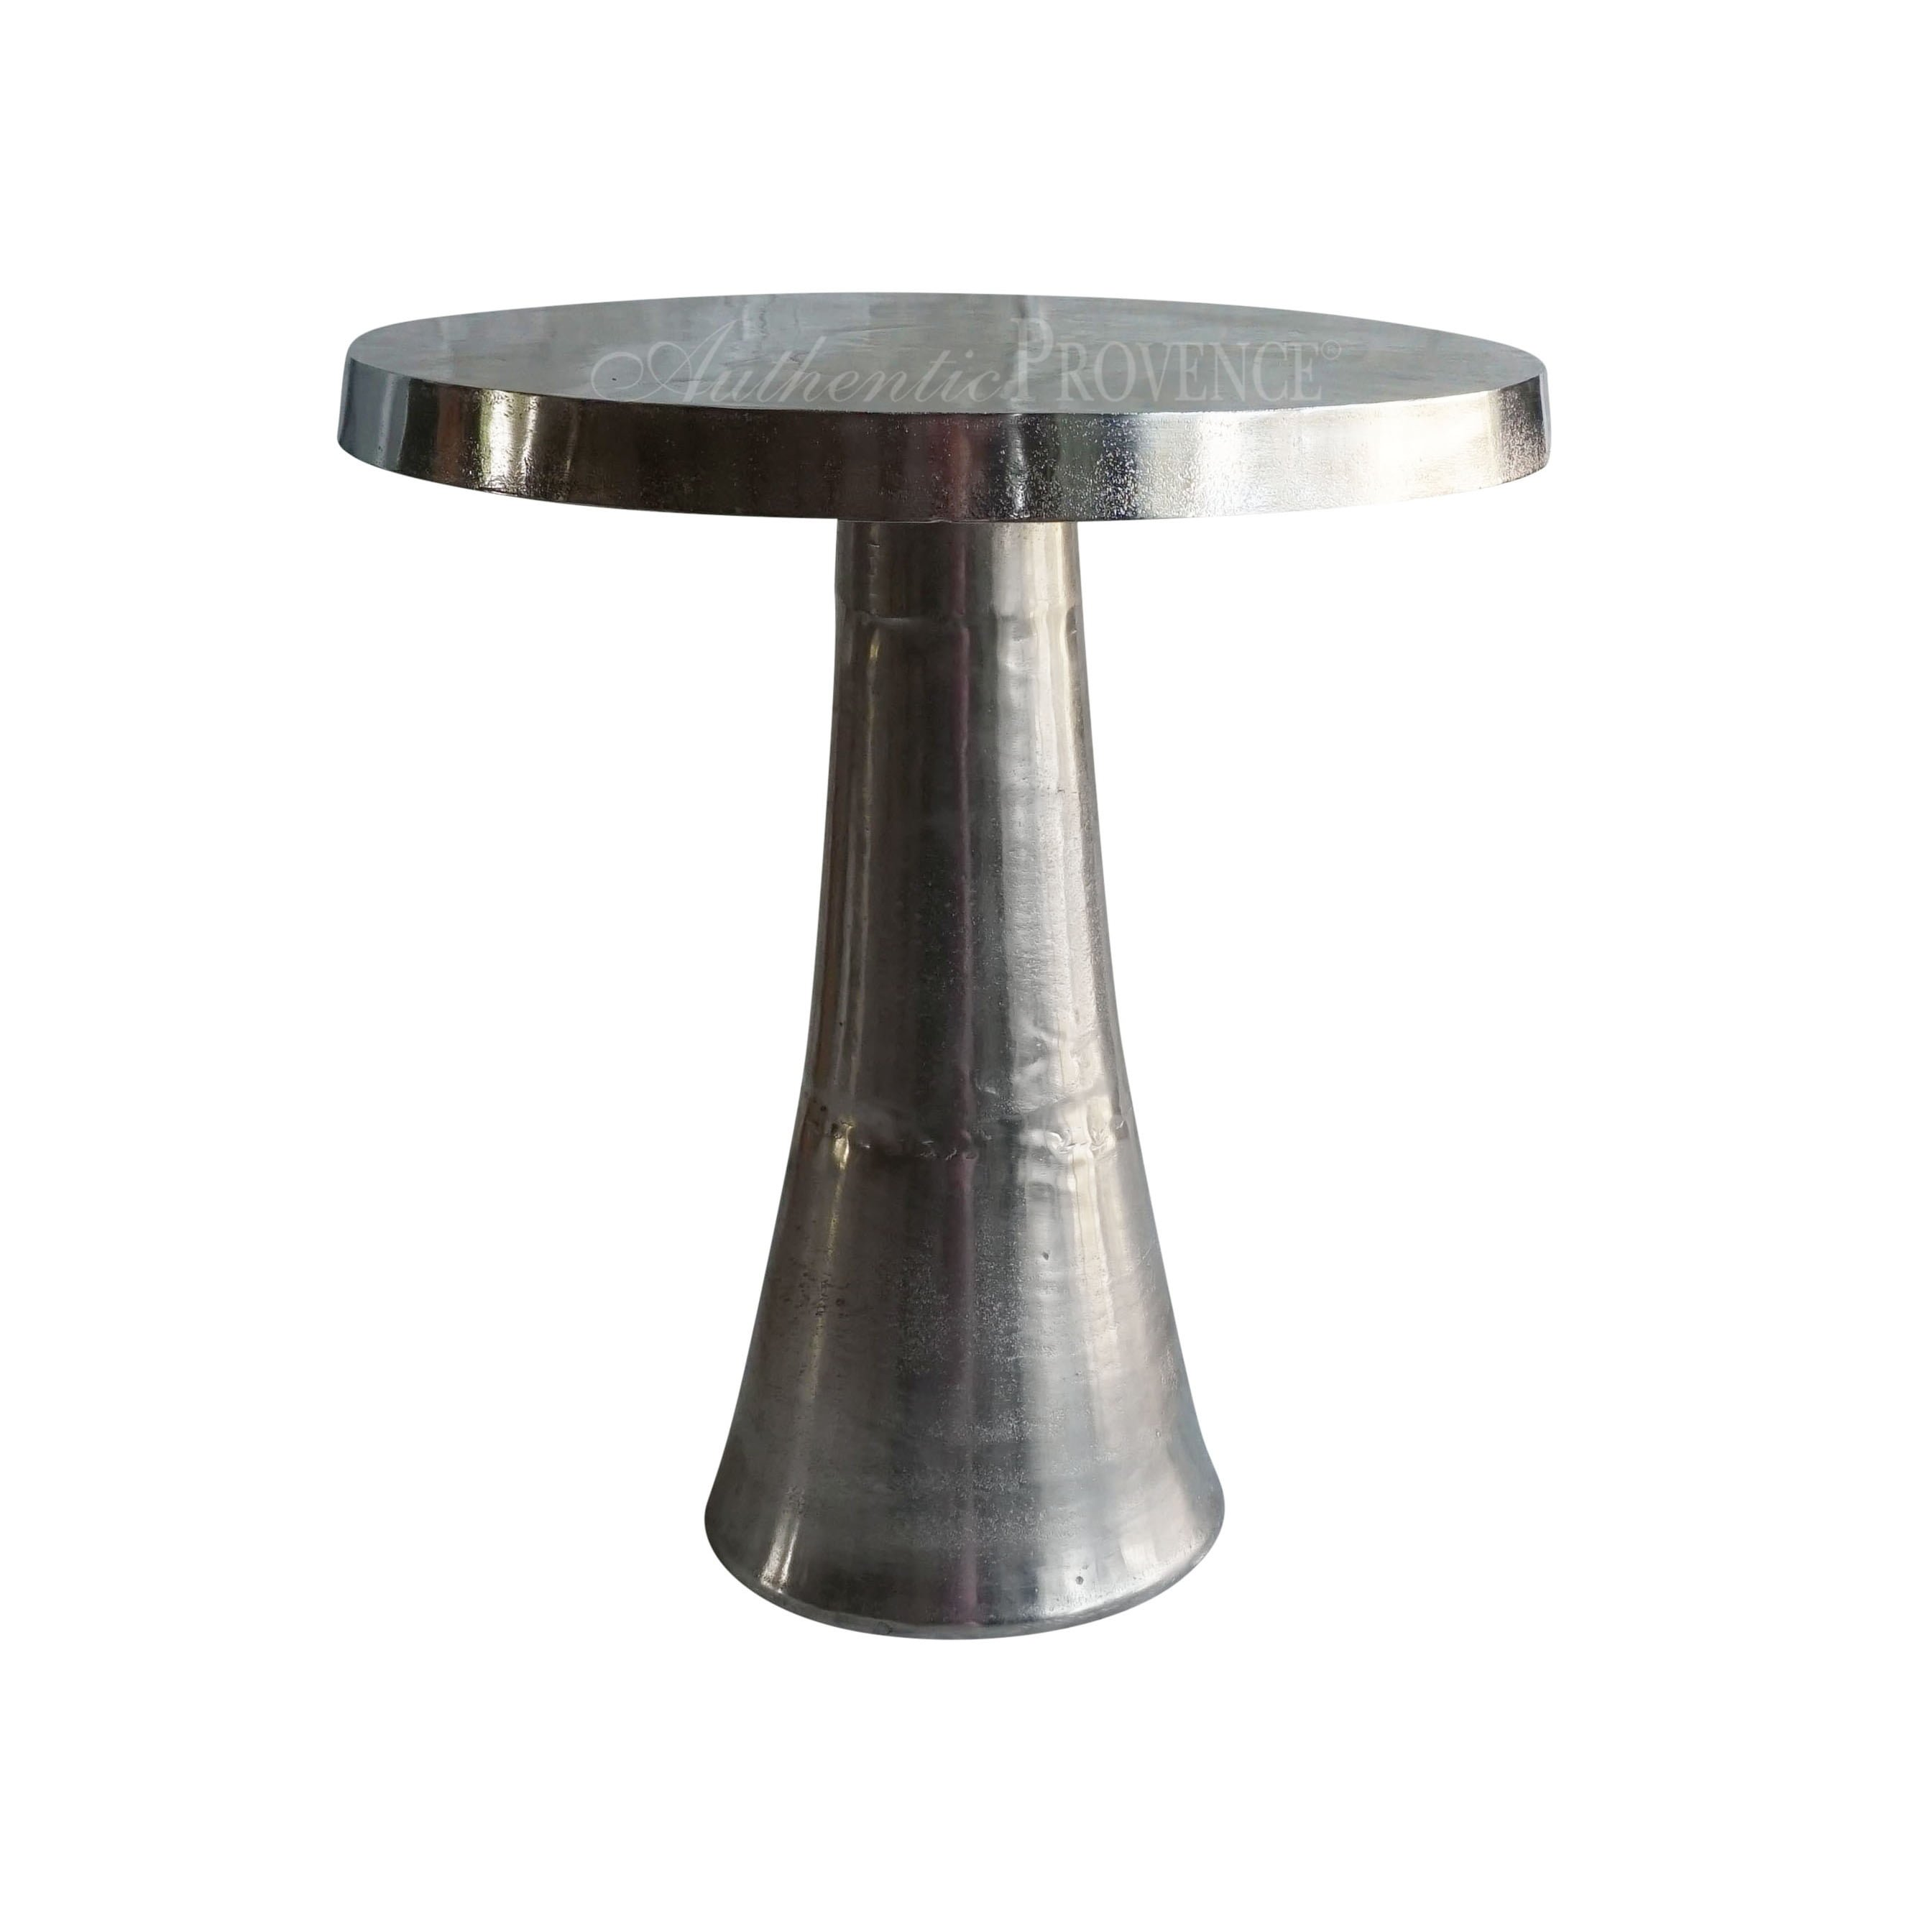 Round side table made of nickel with round base